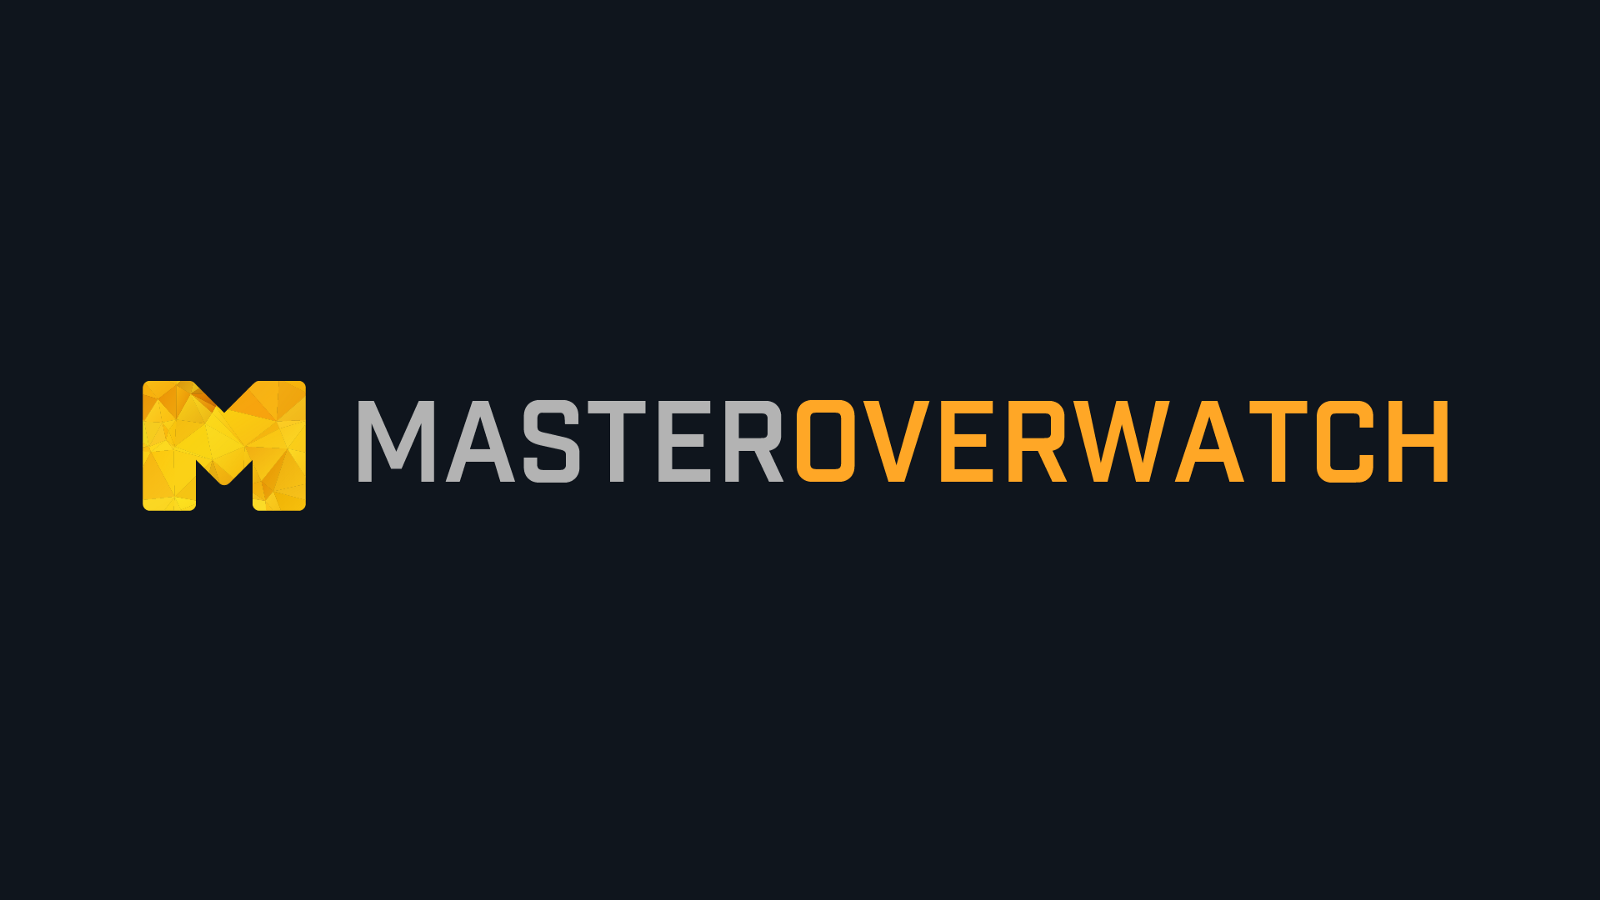 Masteroverwatch Overlay A Twitch Extension Viewers Use To Self